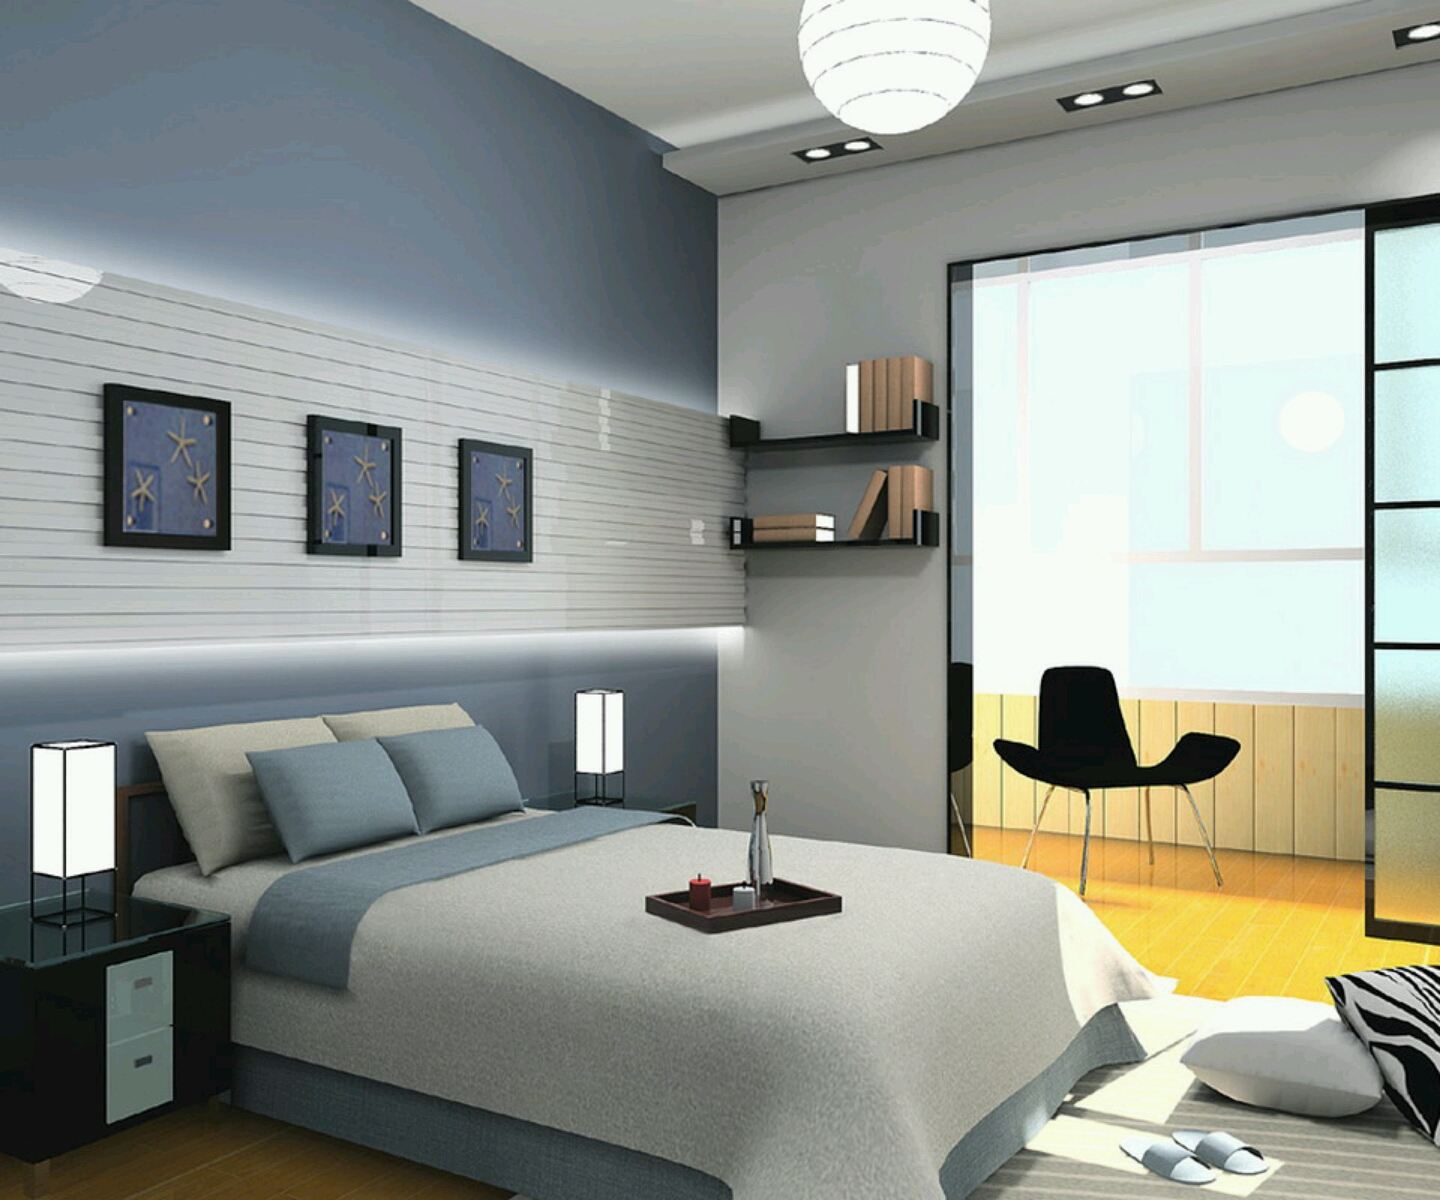 Superior Modern Homes Bedrooms Designs Best Bedrooms Designs Ideas.